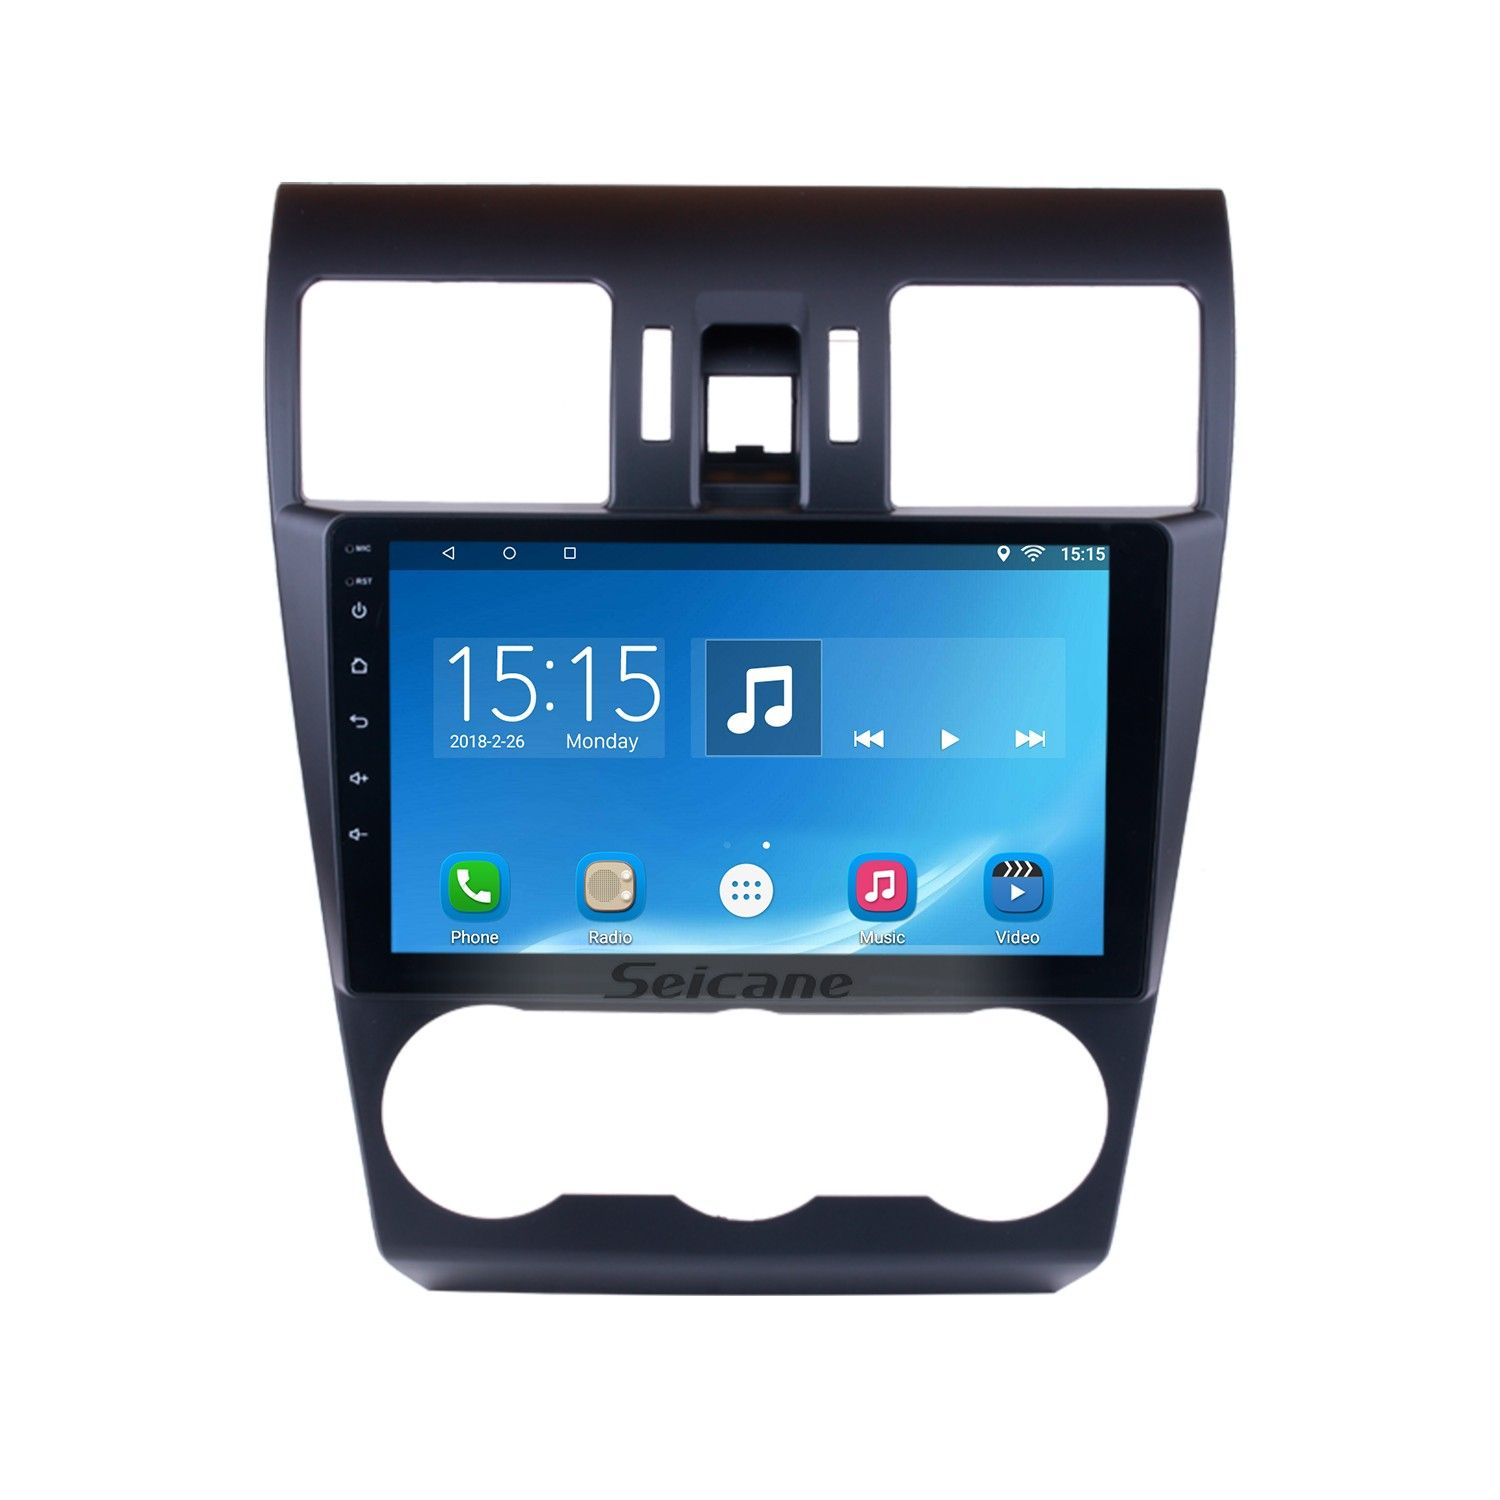 Seicane 9 Inch 2015 Subaru Forester Android 6 0 Radio GPS